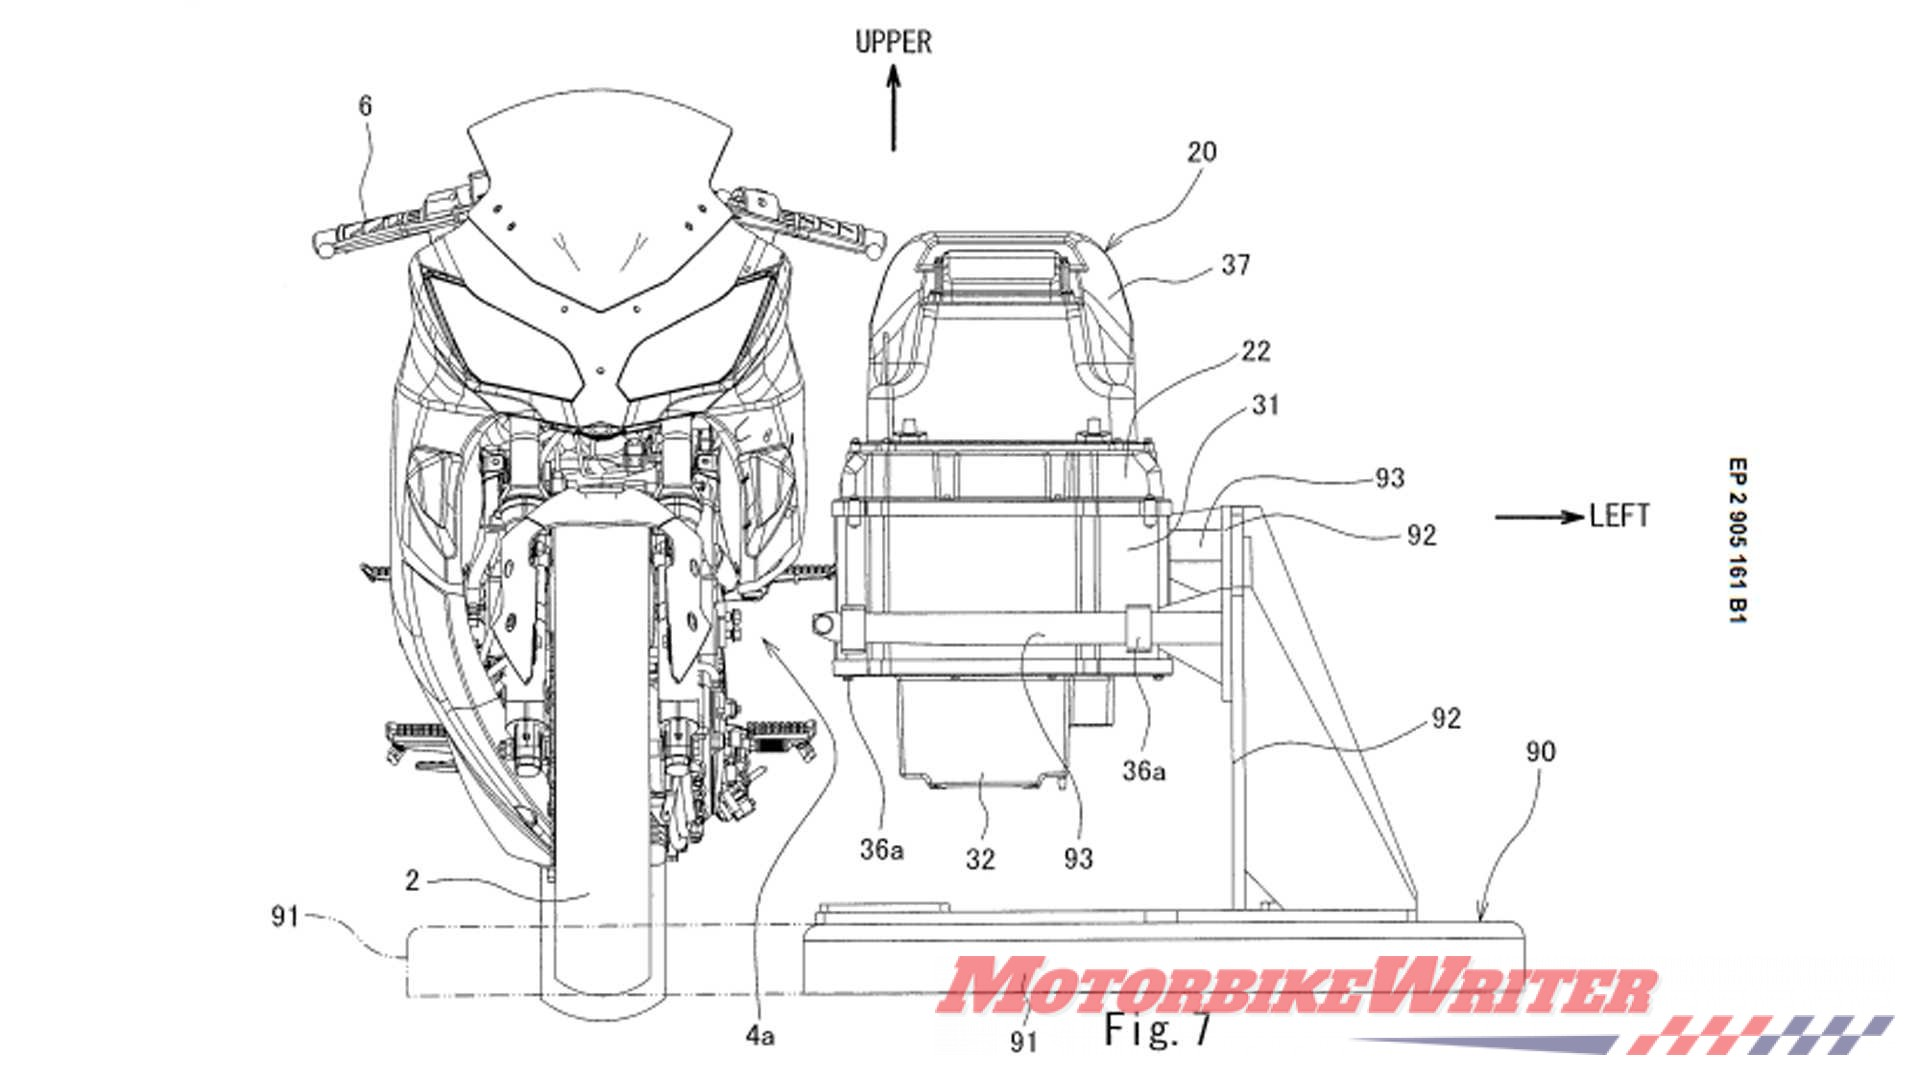 Kawasaki electric Ninja patent battery swap